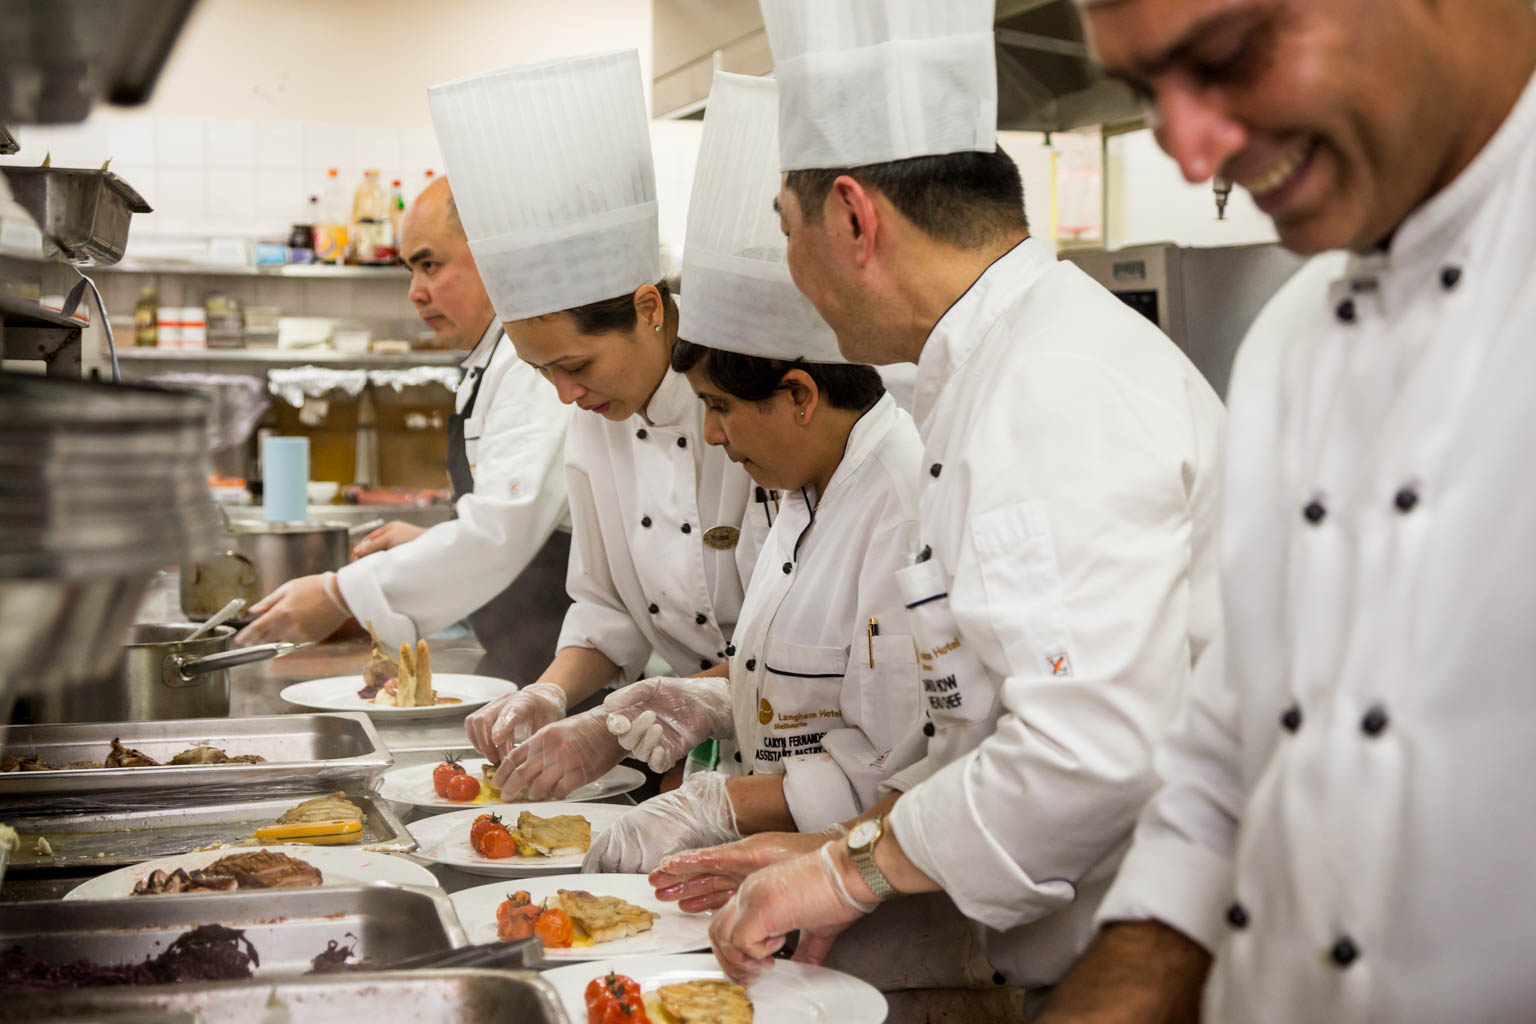 chefs in commercial hotel kitchen plating food